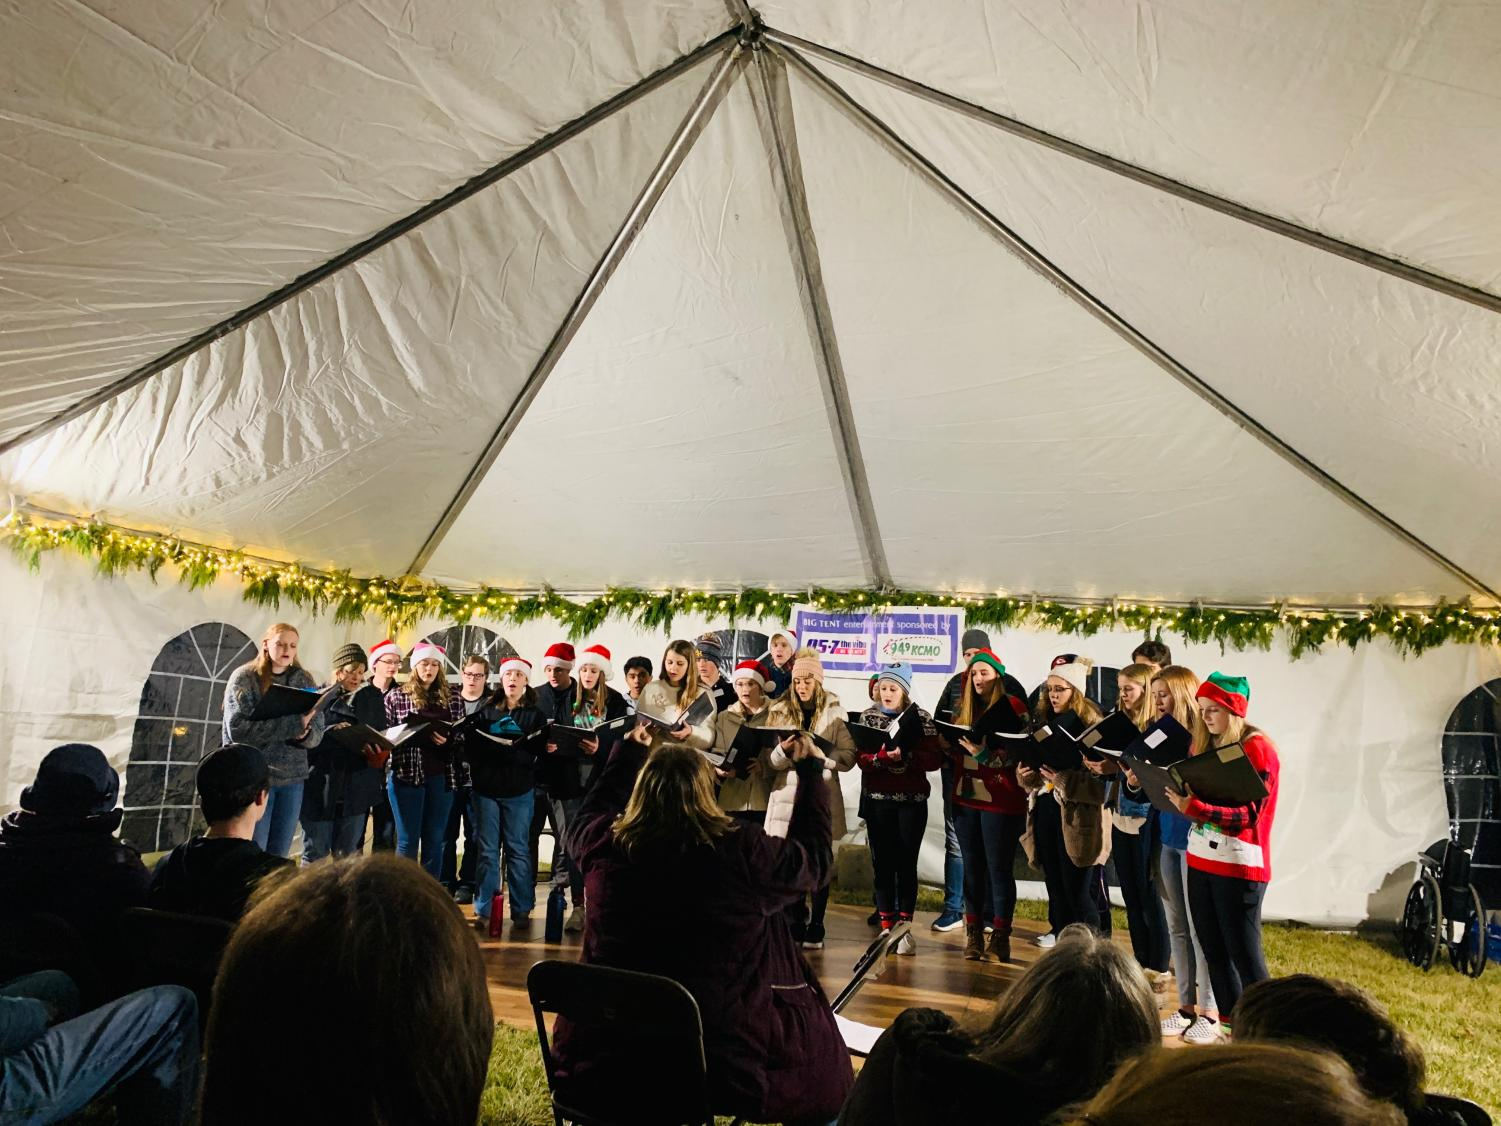 On Dec. 7, the Madrigals Sing at Crown center bringing some holiday cheer to their community. This was just one stop out of many places the Madrigals sang at this holiday season (Photo Submitted by A.Waltrip).